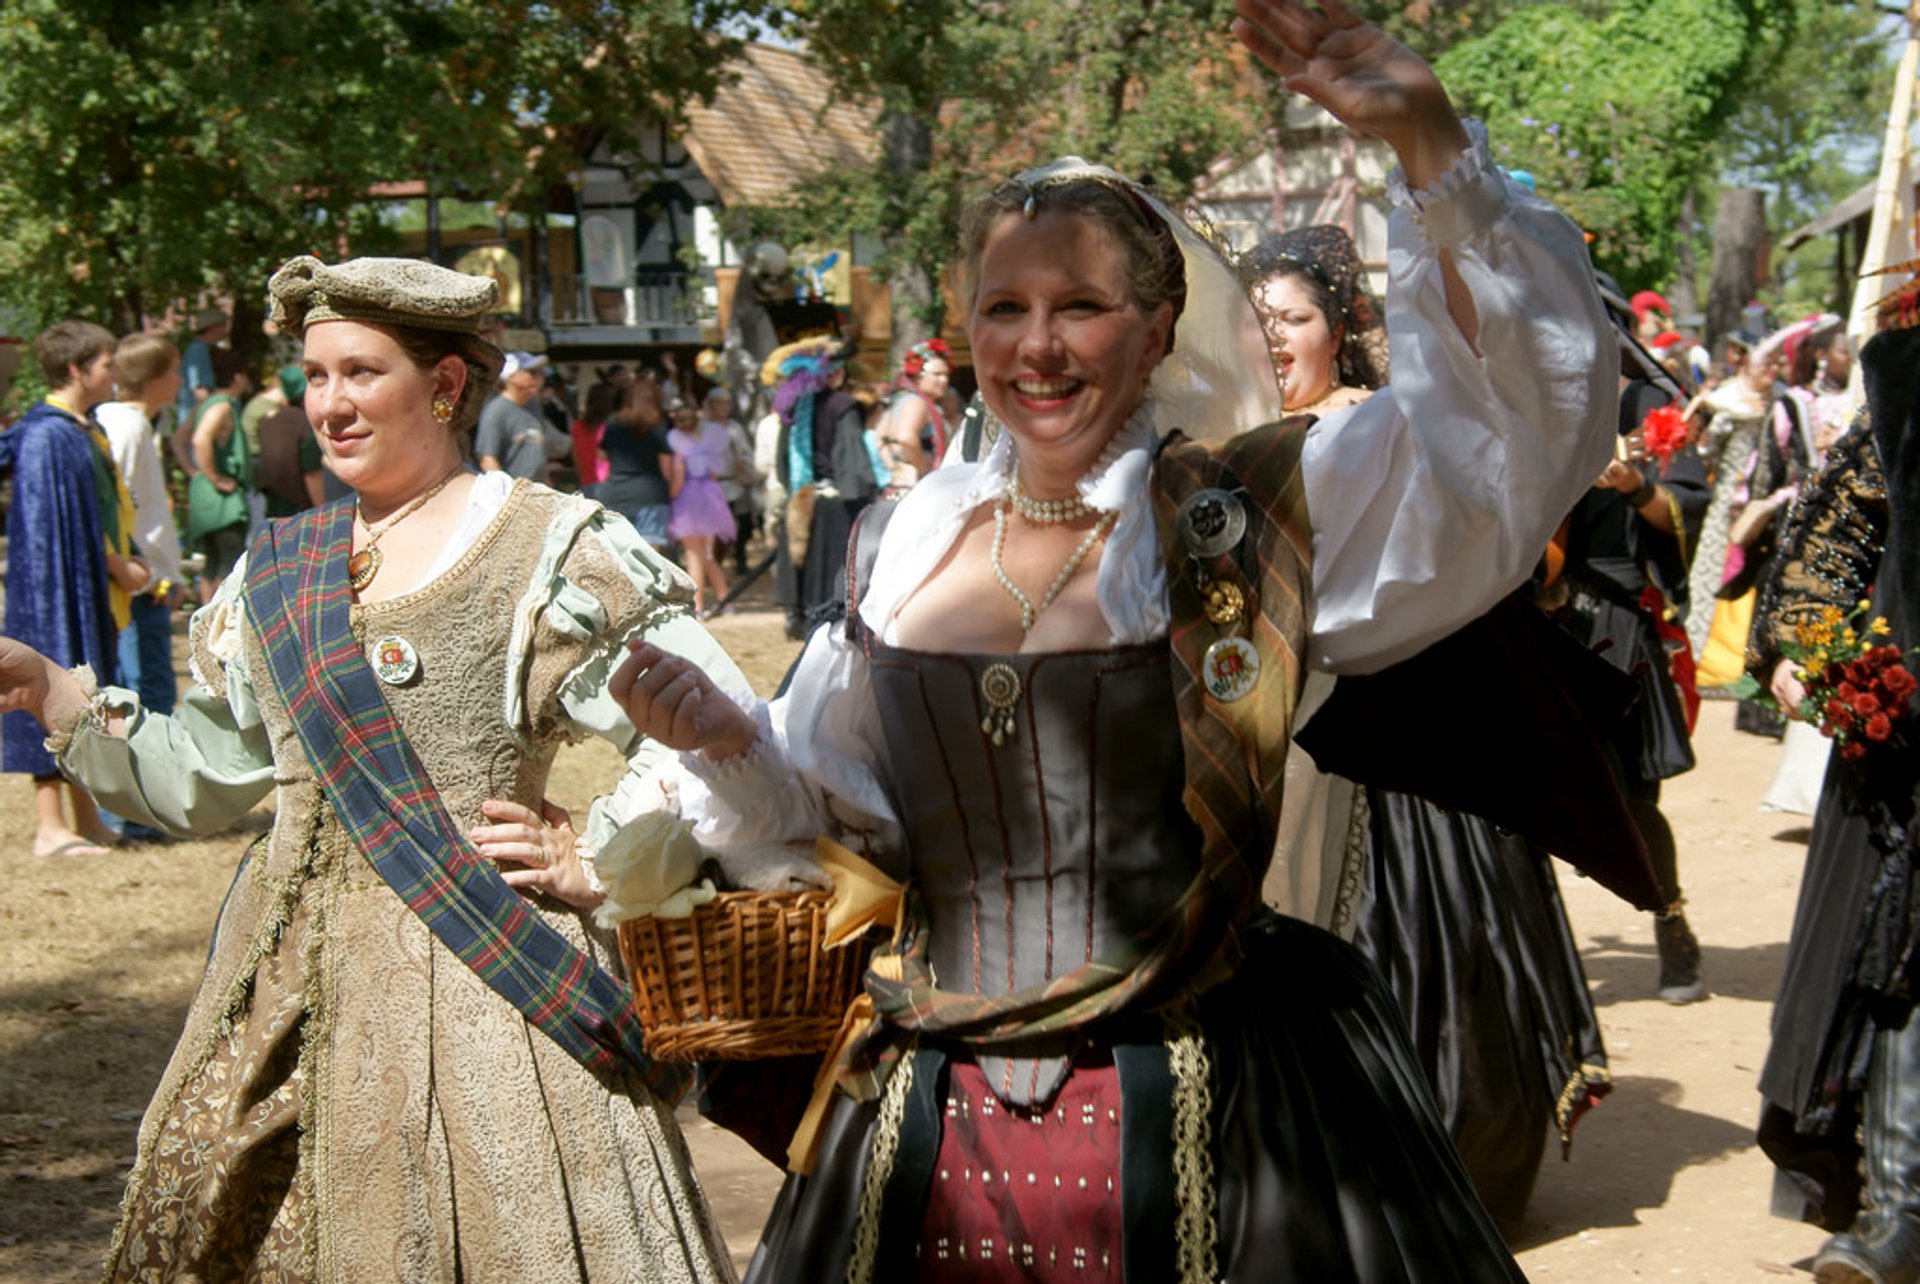 Best time for Texas Renaissance Festival in Texas 2020